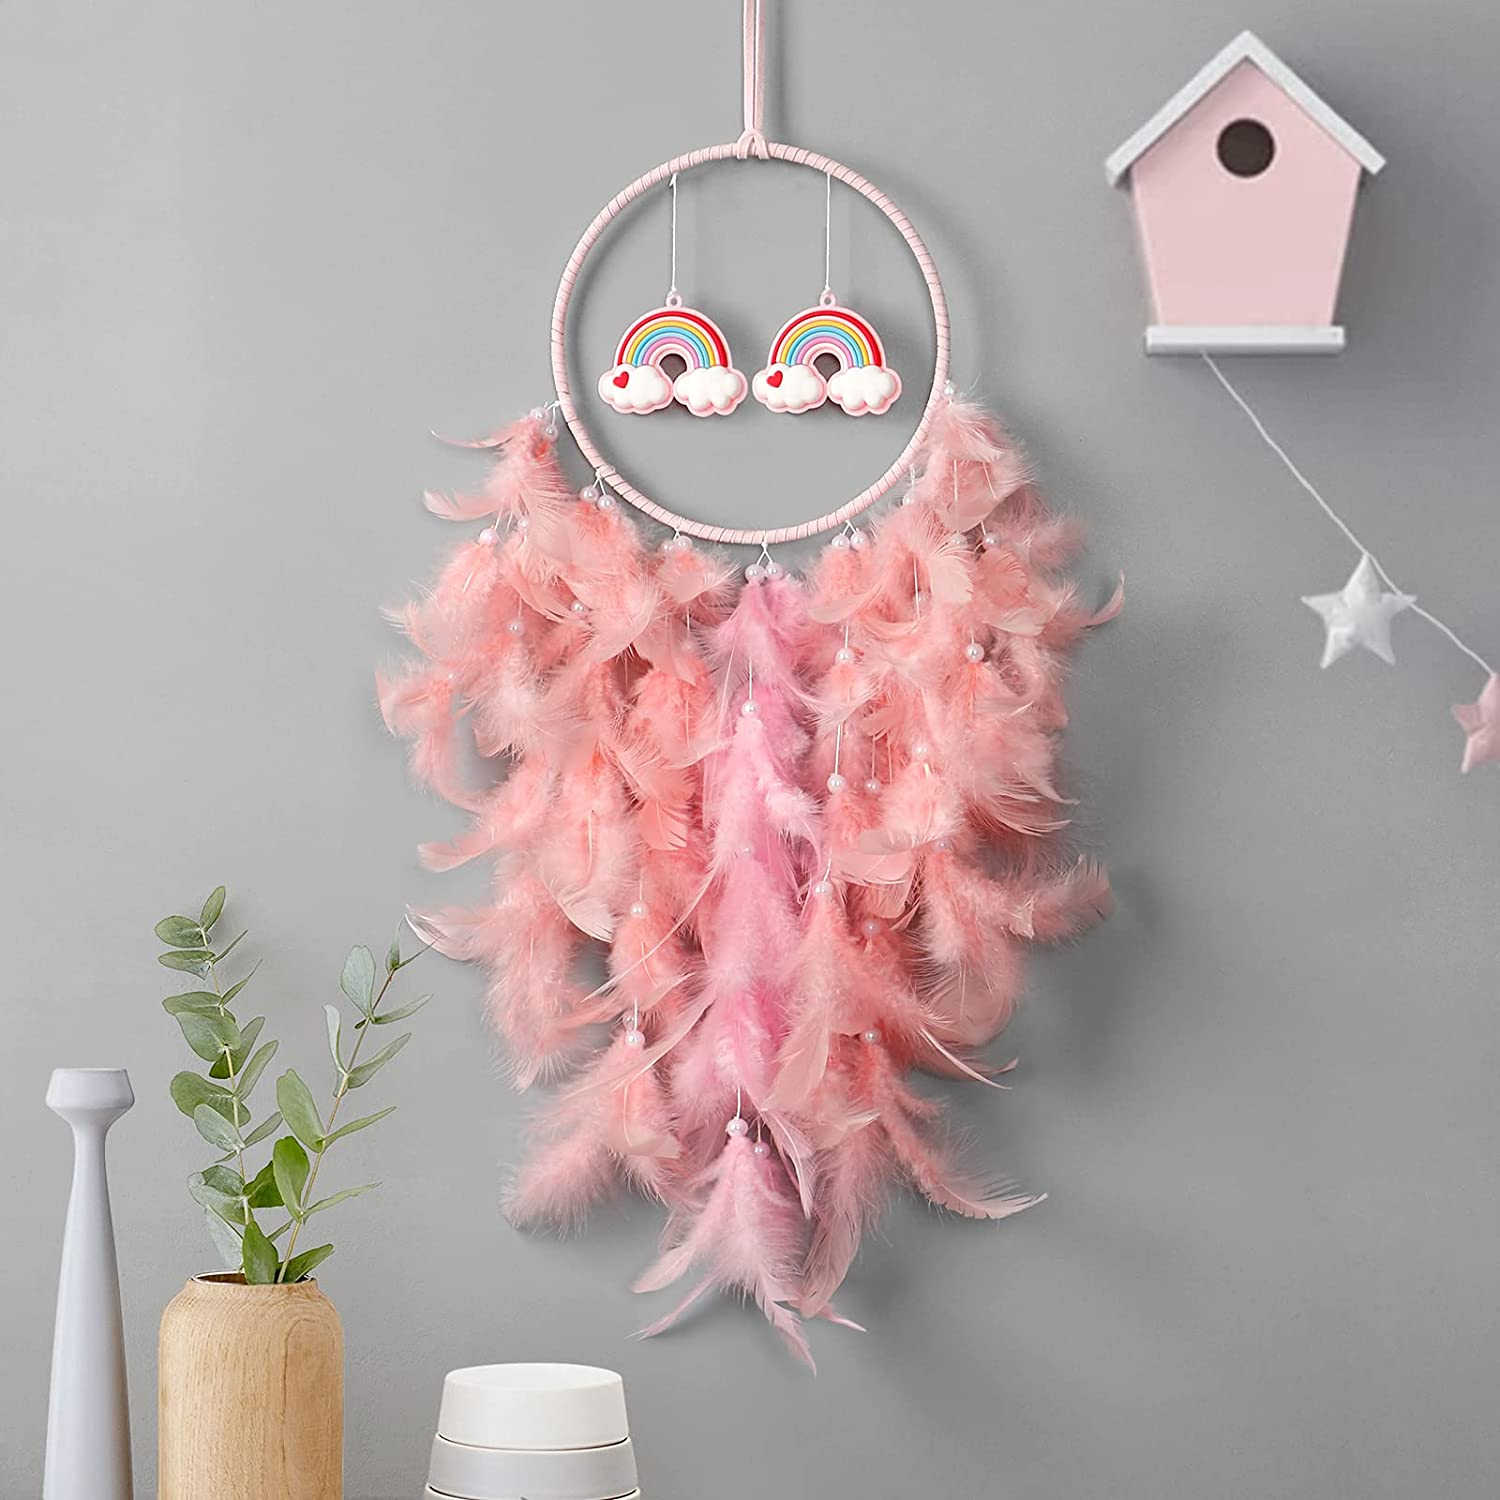 Dremisland Dream Catcher Wall Hanging Drea Max OFFicial shop 78% OFF Pink Feathers Rainbow